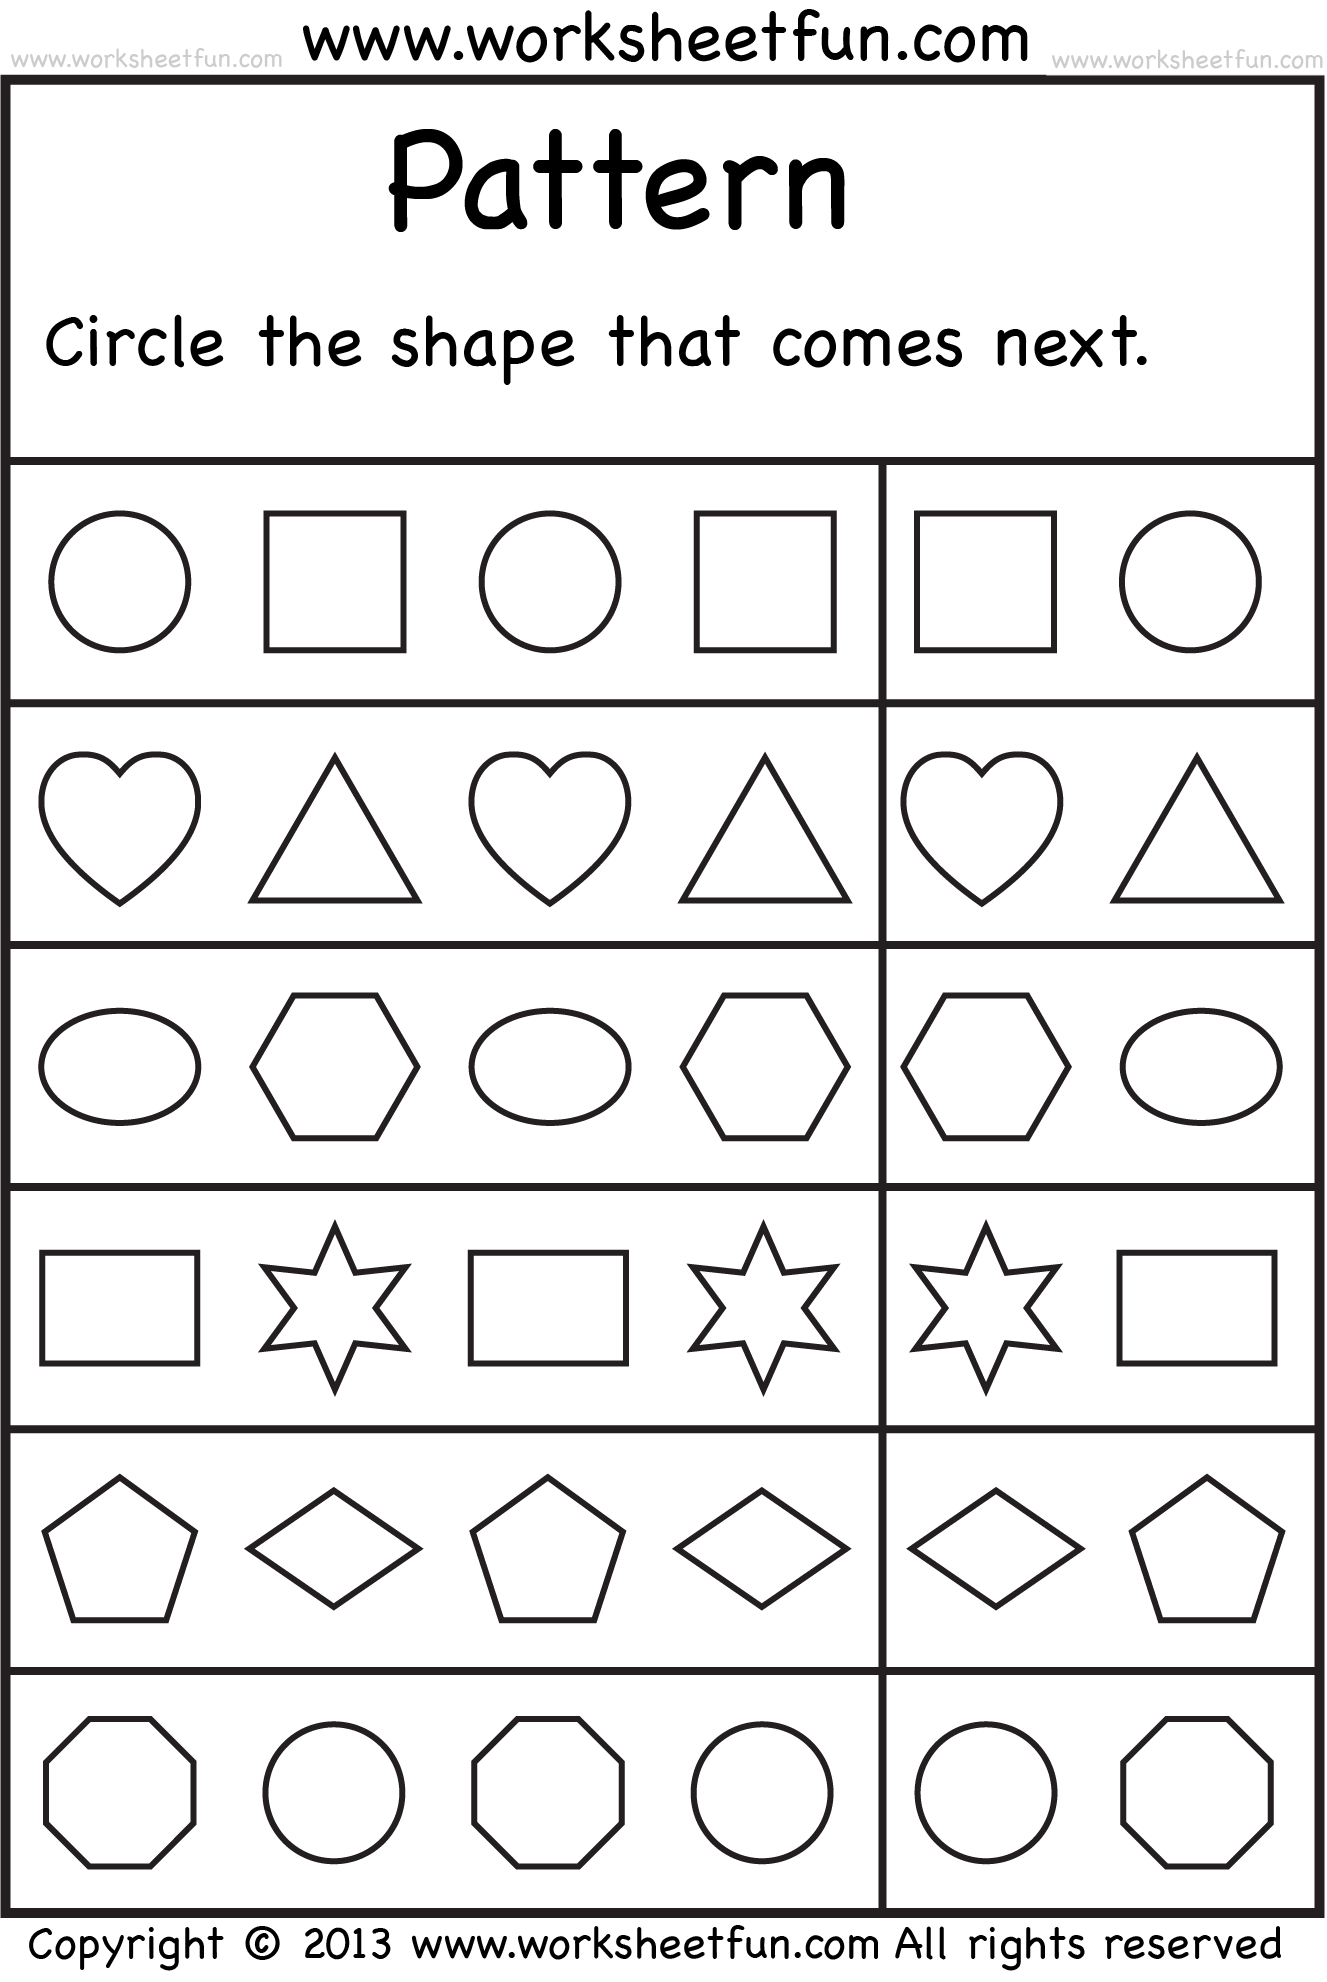 Proatmealus  Nice  Images About School Worksheets On Pinterest  Number Words  With Remarkable  Images About School Worksheets On Pinterest  Number Words Alphabet Worksheets And Free Printable Kindergarten Worksheets With Endearing Letter A Printable Worksheets Also Mcdougal Littell American History Worksheet Answers In Addition Solving Quadratic Equations By Factoring Worksheet Algebra  And Multiplying Fractions By Whole Numbers Worksheets Th Grade As Well As Worksheets  Kids Additionally Basic Grammar Worksheets From Pinterestcom With Proatmealus  Remarkable  Images About School Worksheets On Pinterest  Number Words  With Endearing  Images About School Worksheets On Pinterest  Number Words Alphabet Worksheets And Free Printable Kindergarten Worksheets And Nice Letter A Printable Worksheets Also Mcdougal Littell American History Worksheet Answers In Addition Solving Quadratic Equations By Factoring Worksheet Algebra  From Pinterestcom